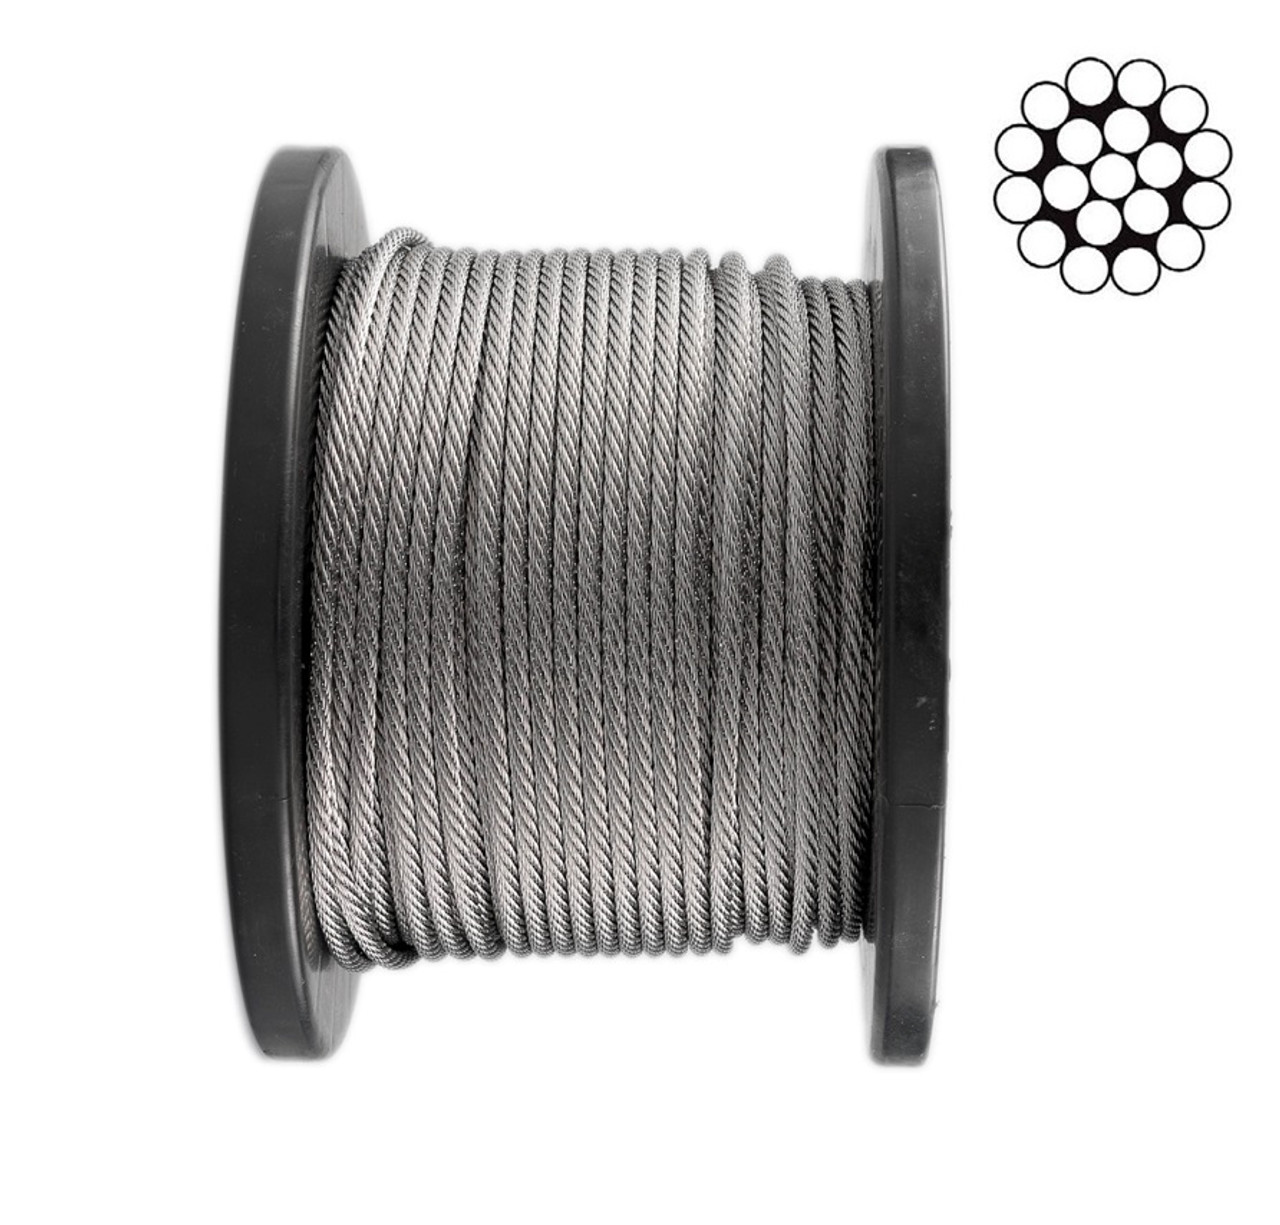 3.2mm Stainless Steel Wire Rope 1 x 19 - 100m roll